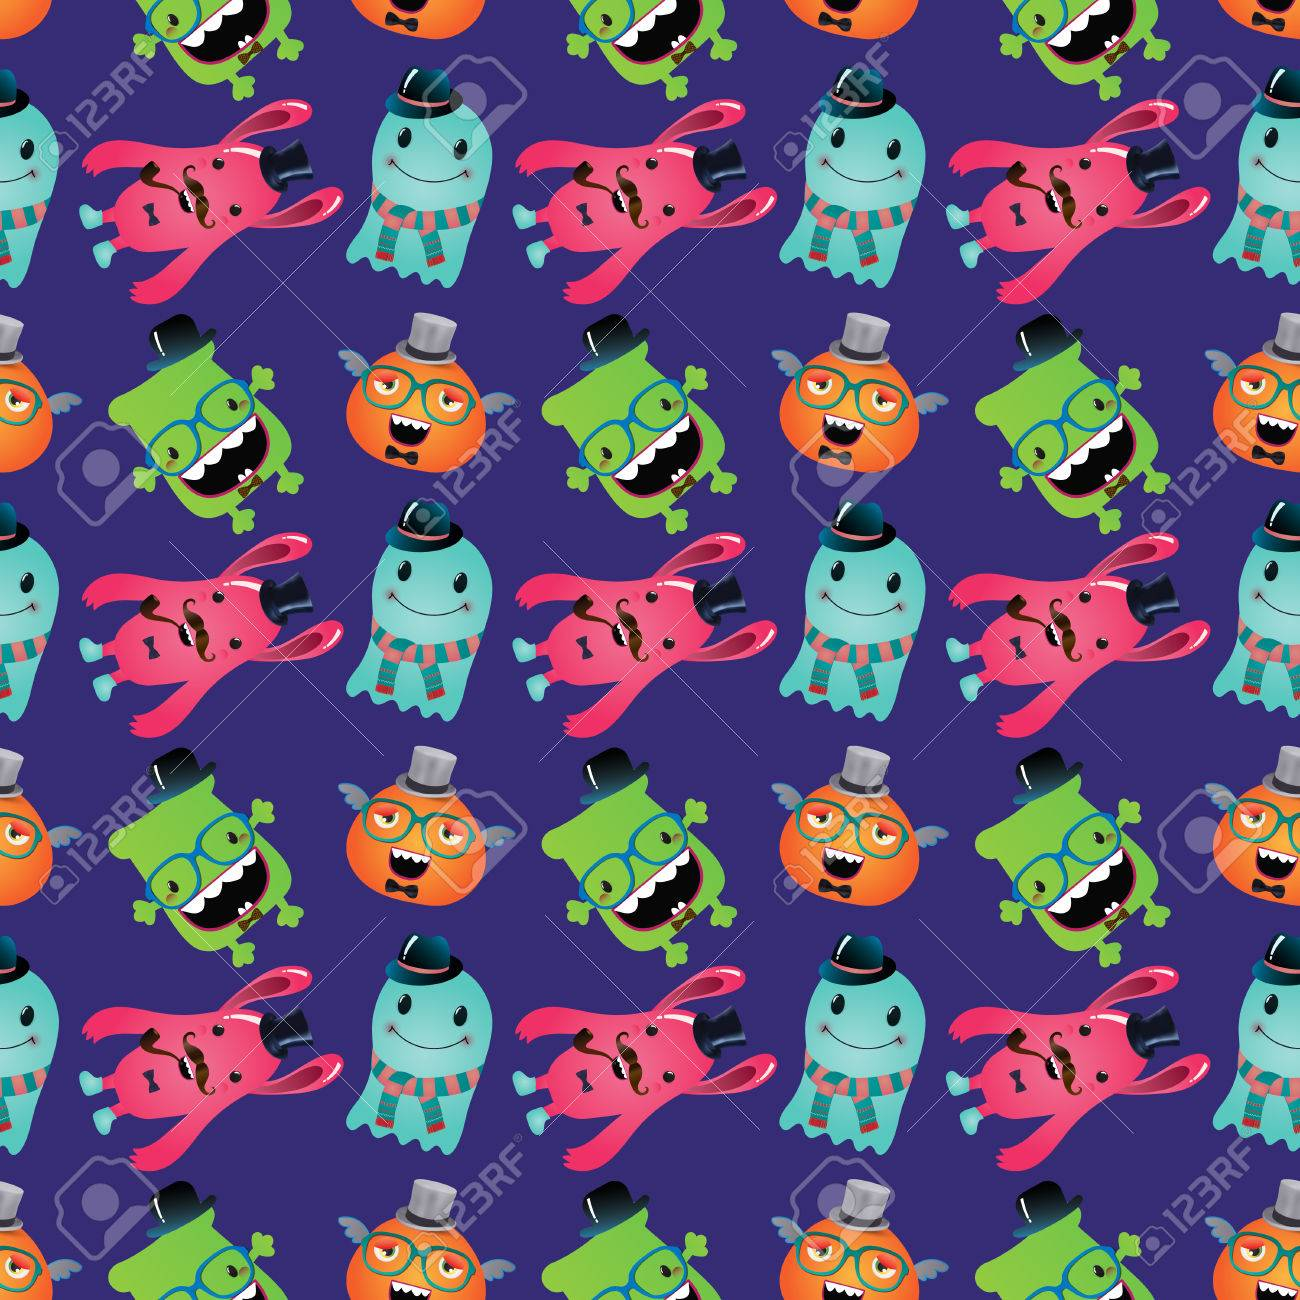 Vector Cute Retro Hipster Monsters Seamless Pattern, Background Stock Vector - 25498043